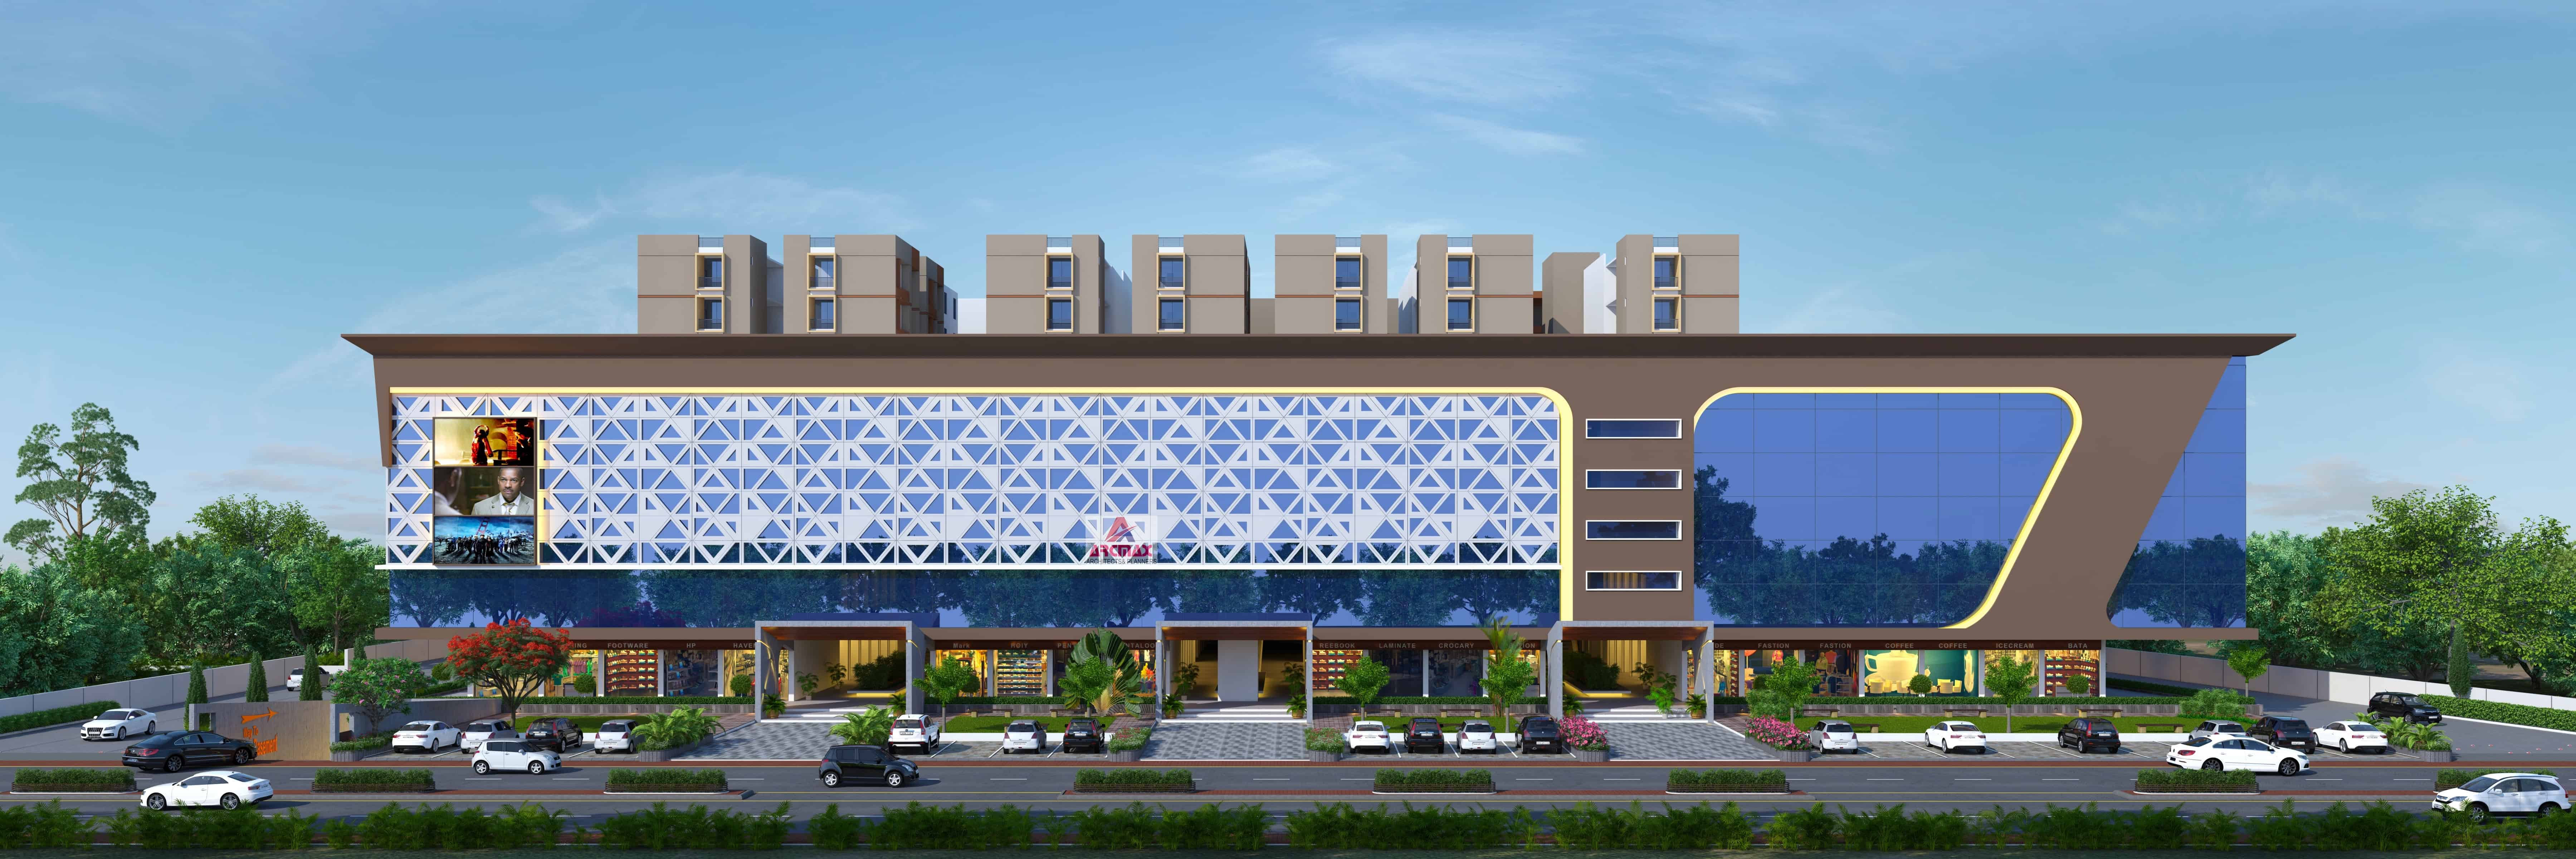 Architect for multiplex design arcmax architects planners for Best architects websites